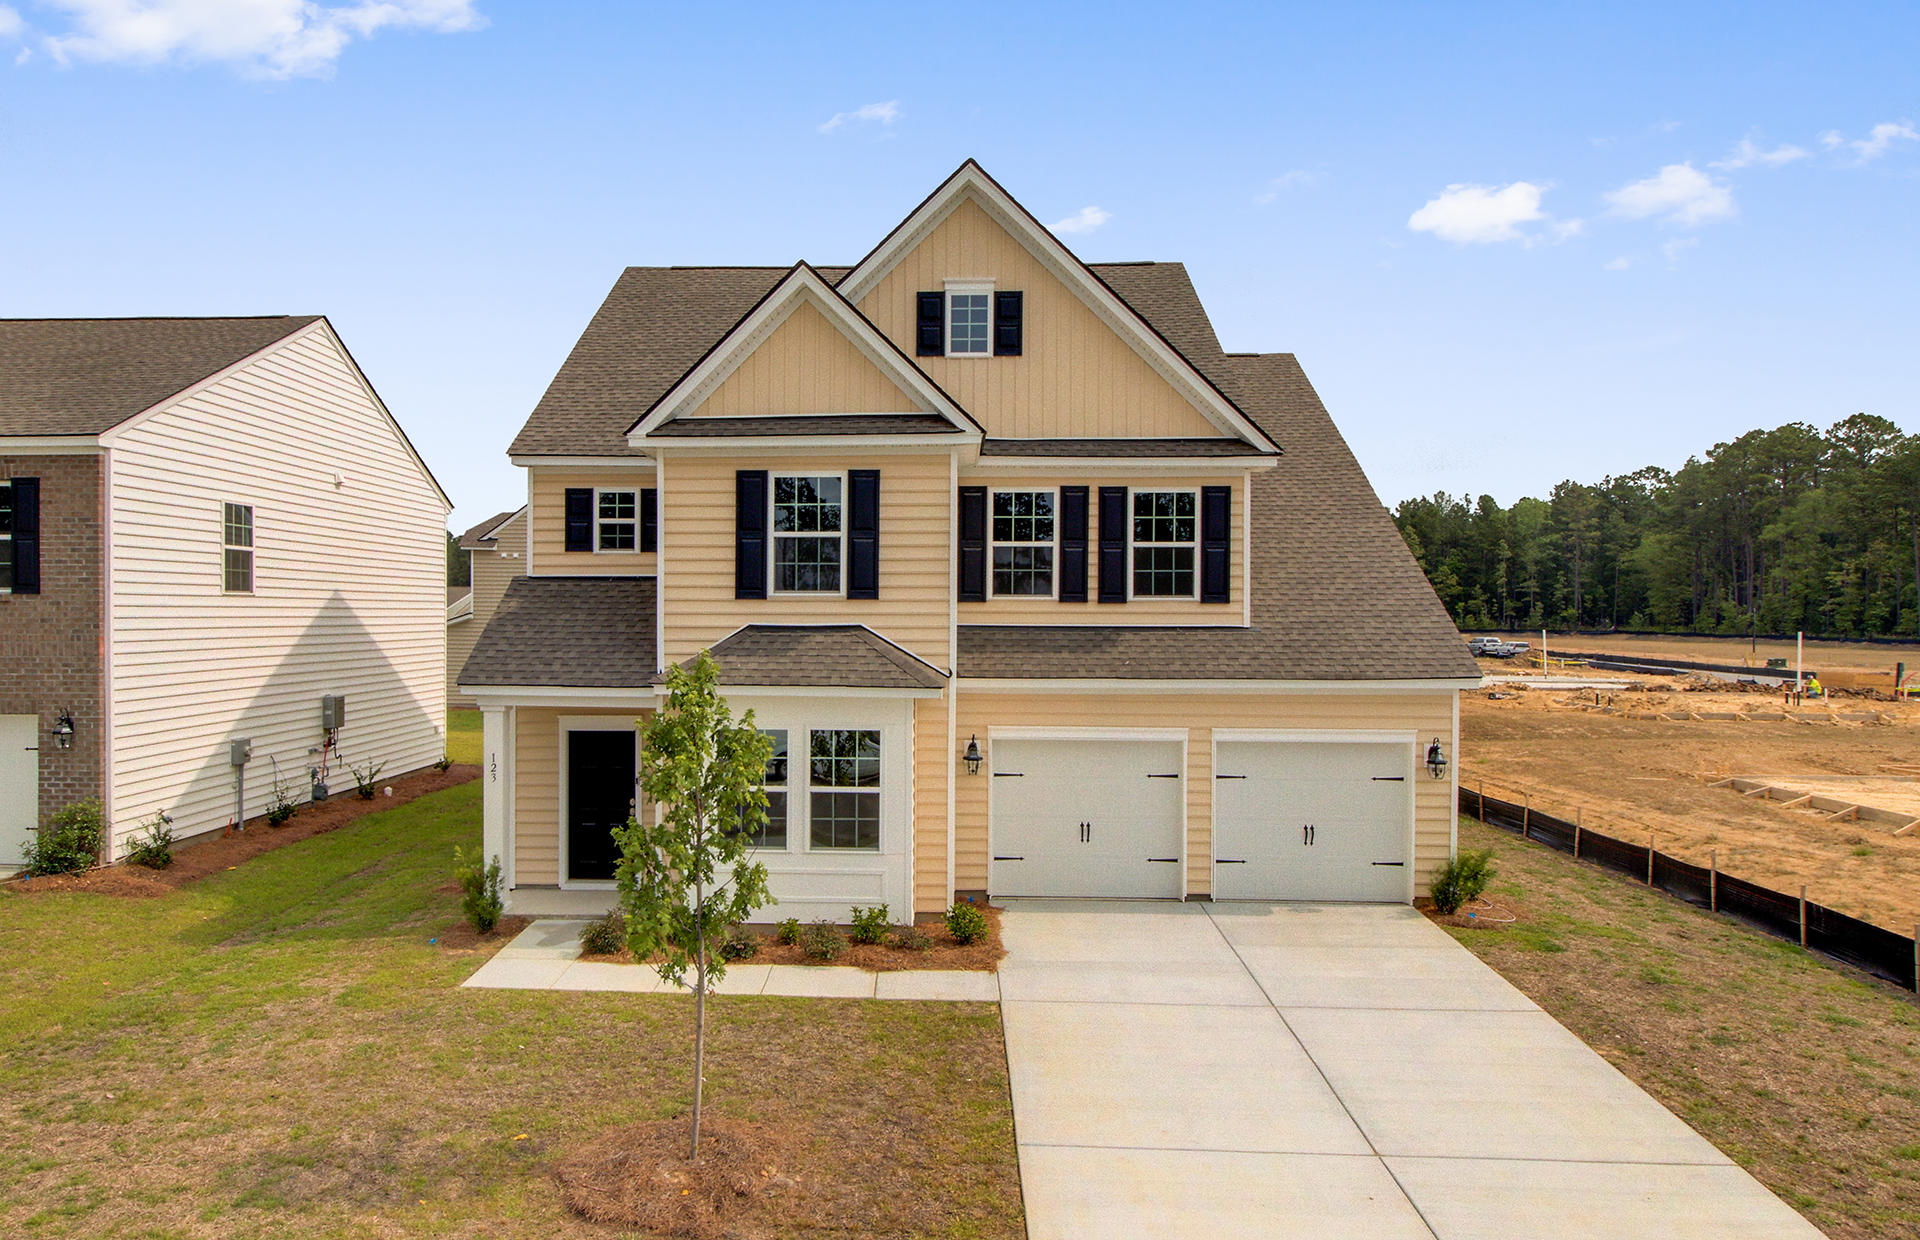 136 Stagecoach Avenue Summerville, Sc 29486